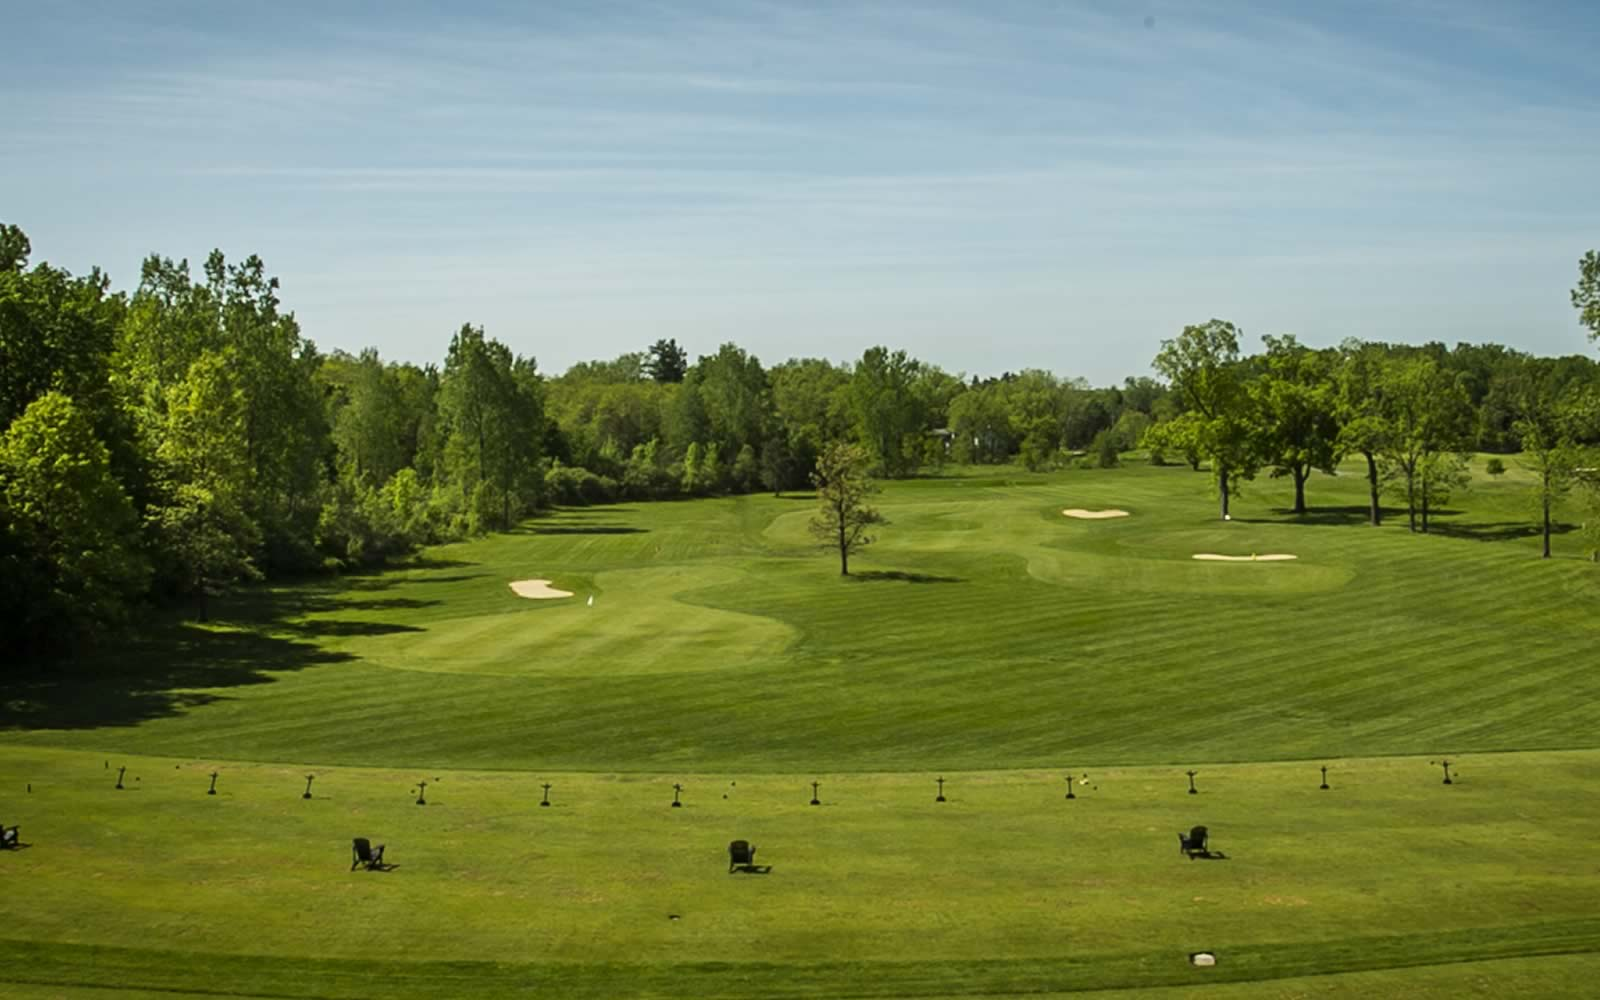 golf-driving-ranges-in-brighton-mi